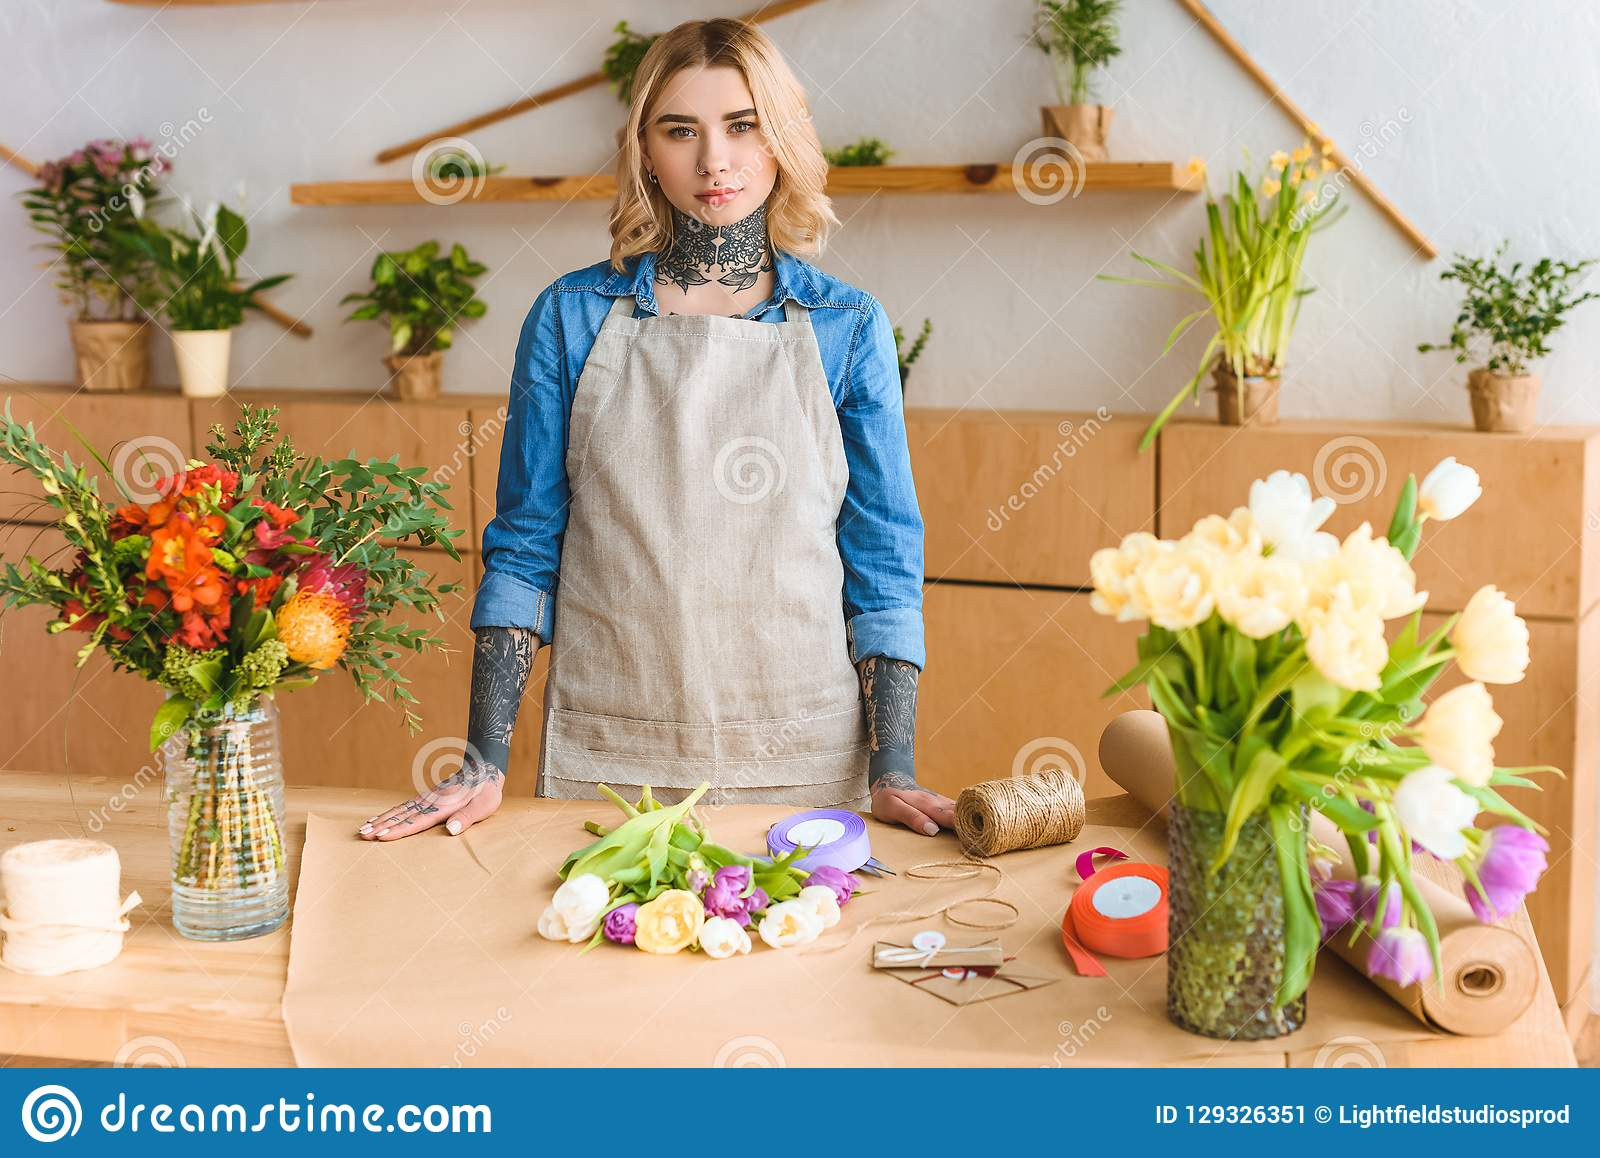 beautiful young female florist with tattoos looking at camera